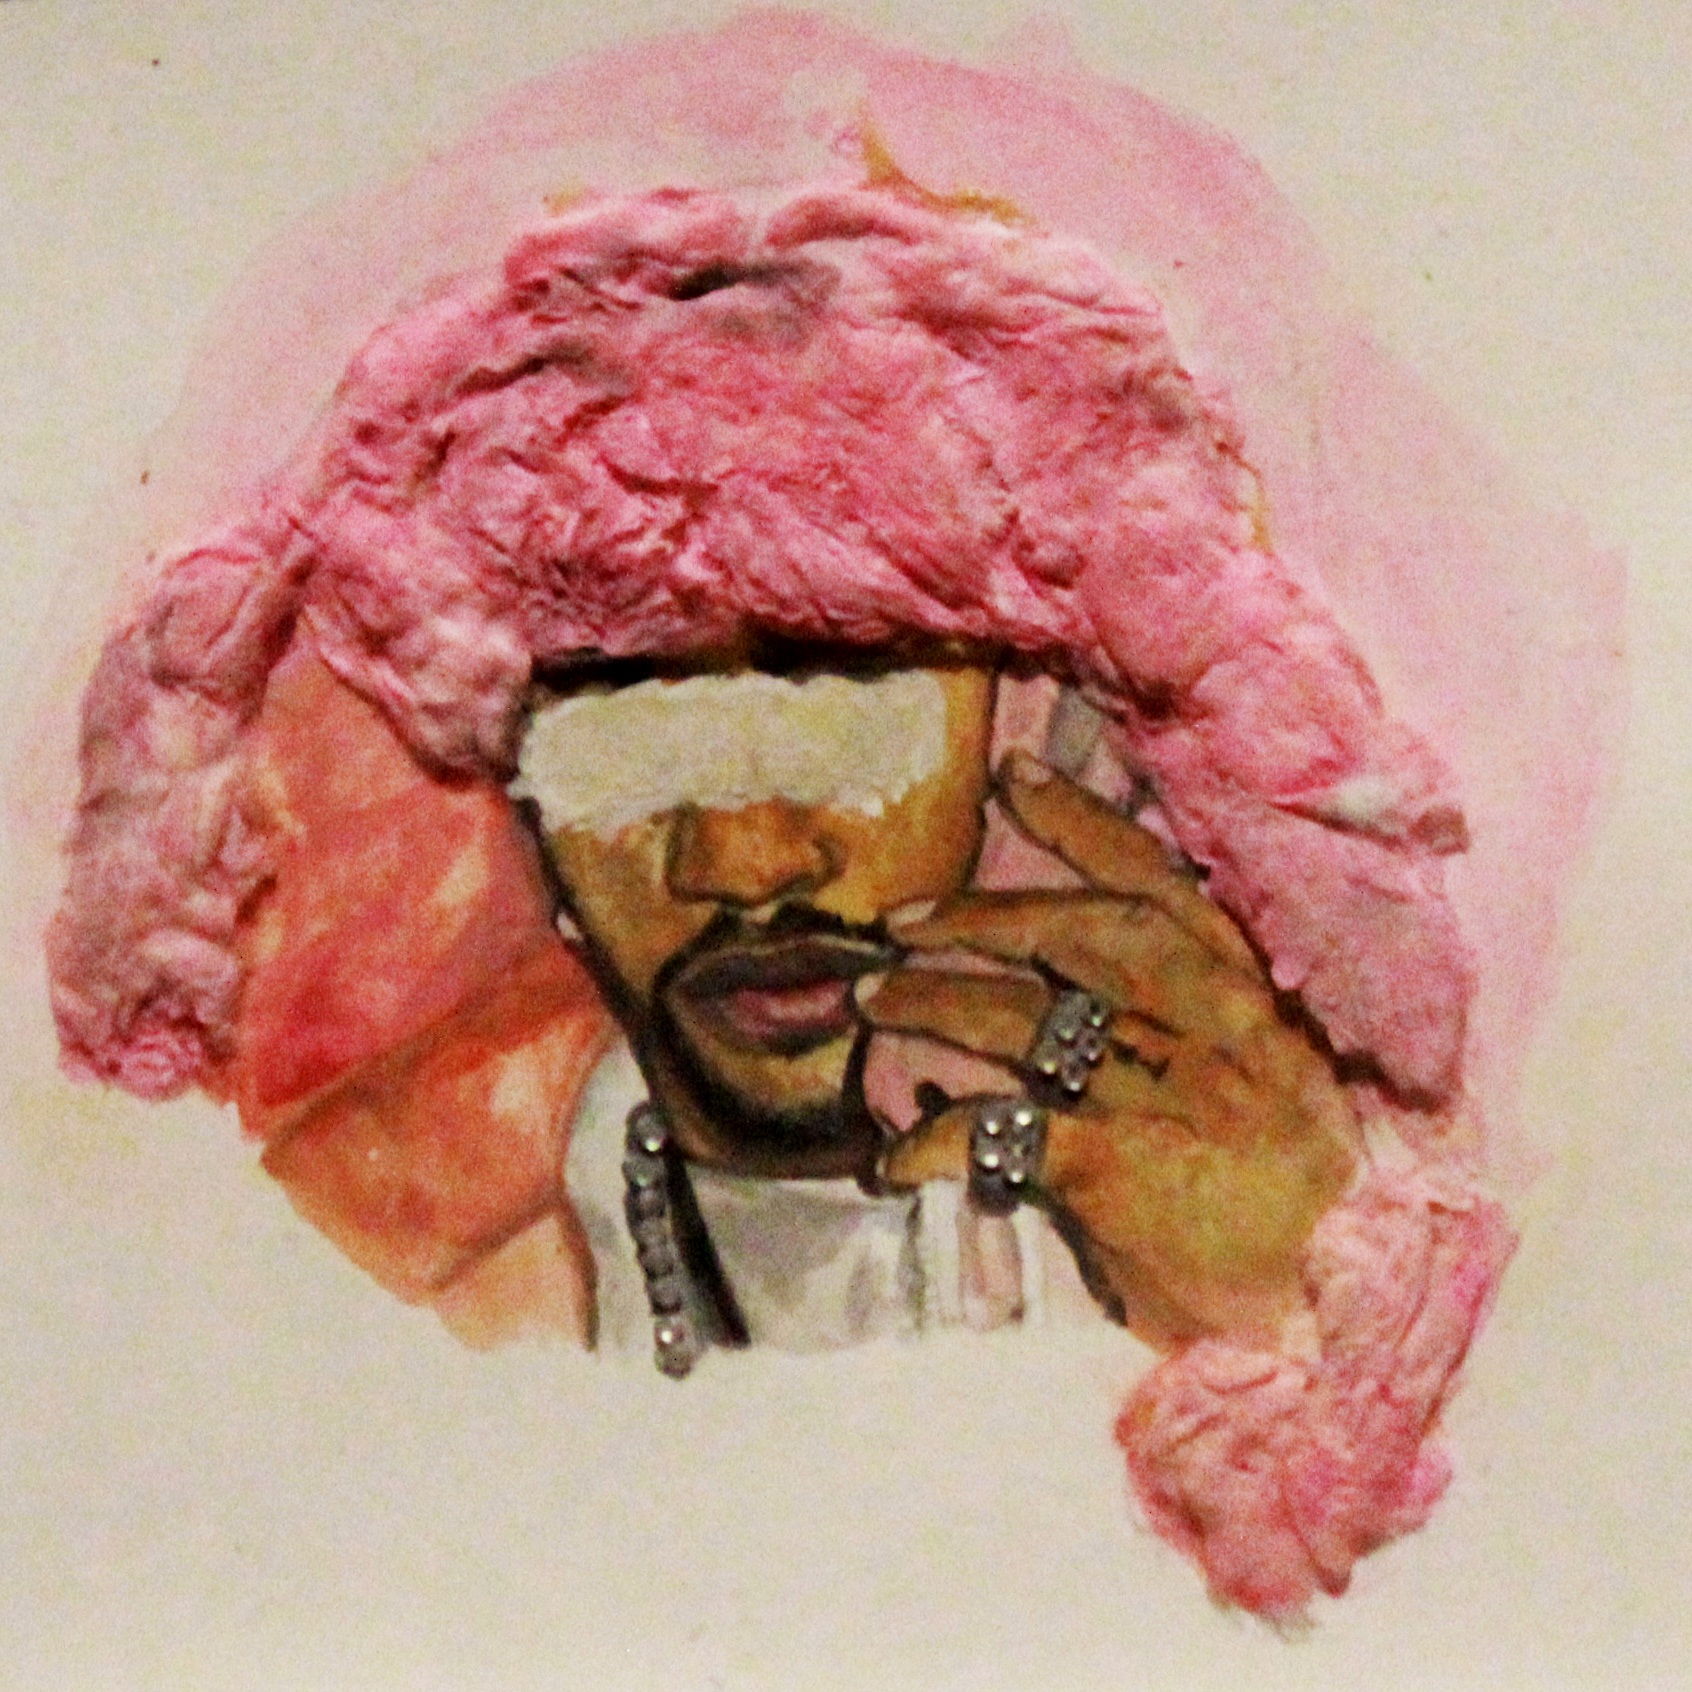 FART.PDF(Benjamin Moore) <br>Killa Cam 001, 2016 <br>Mixed media on paper <br>8 x 8 inches <br>Retail value: $95